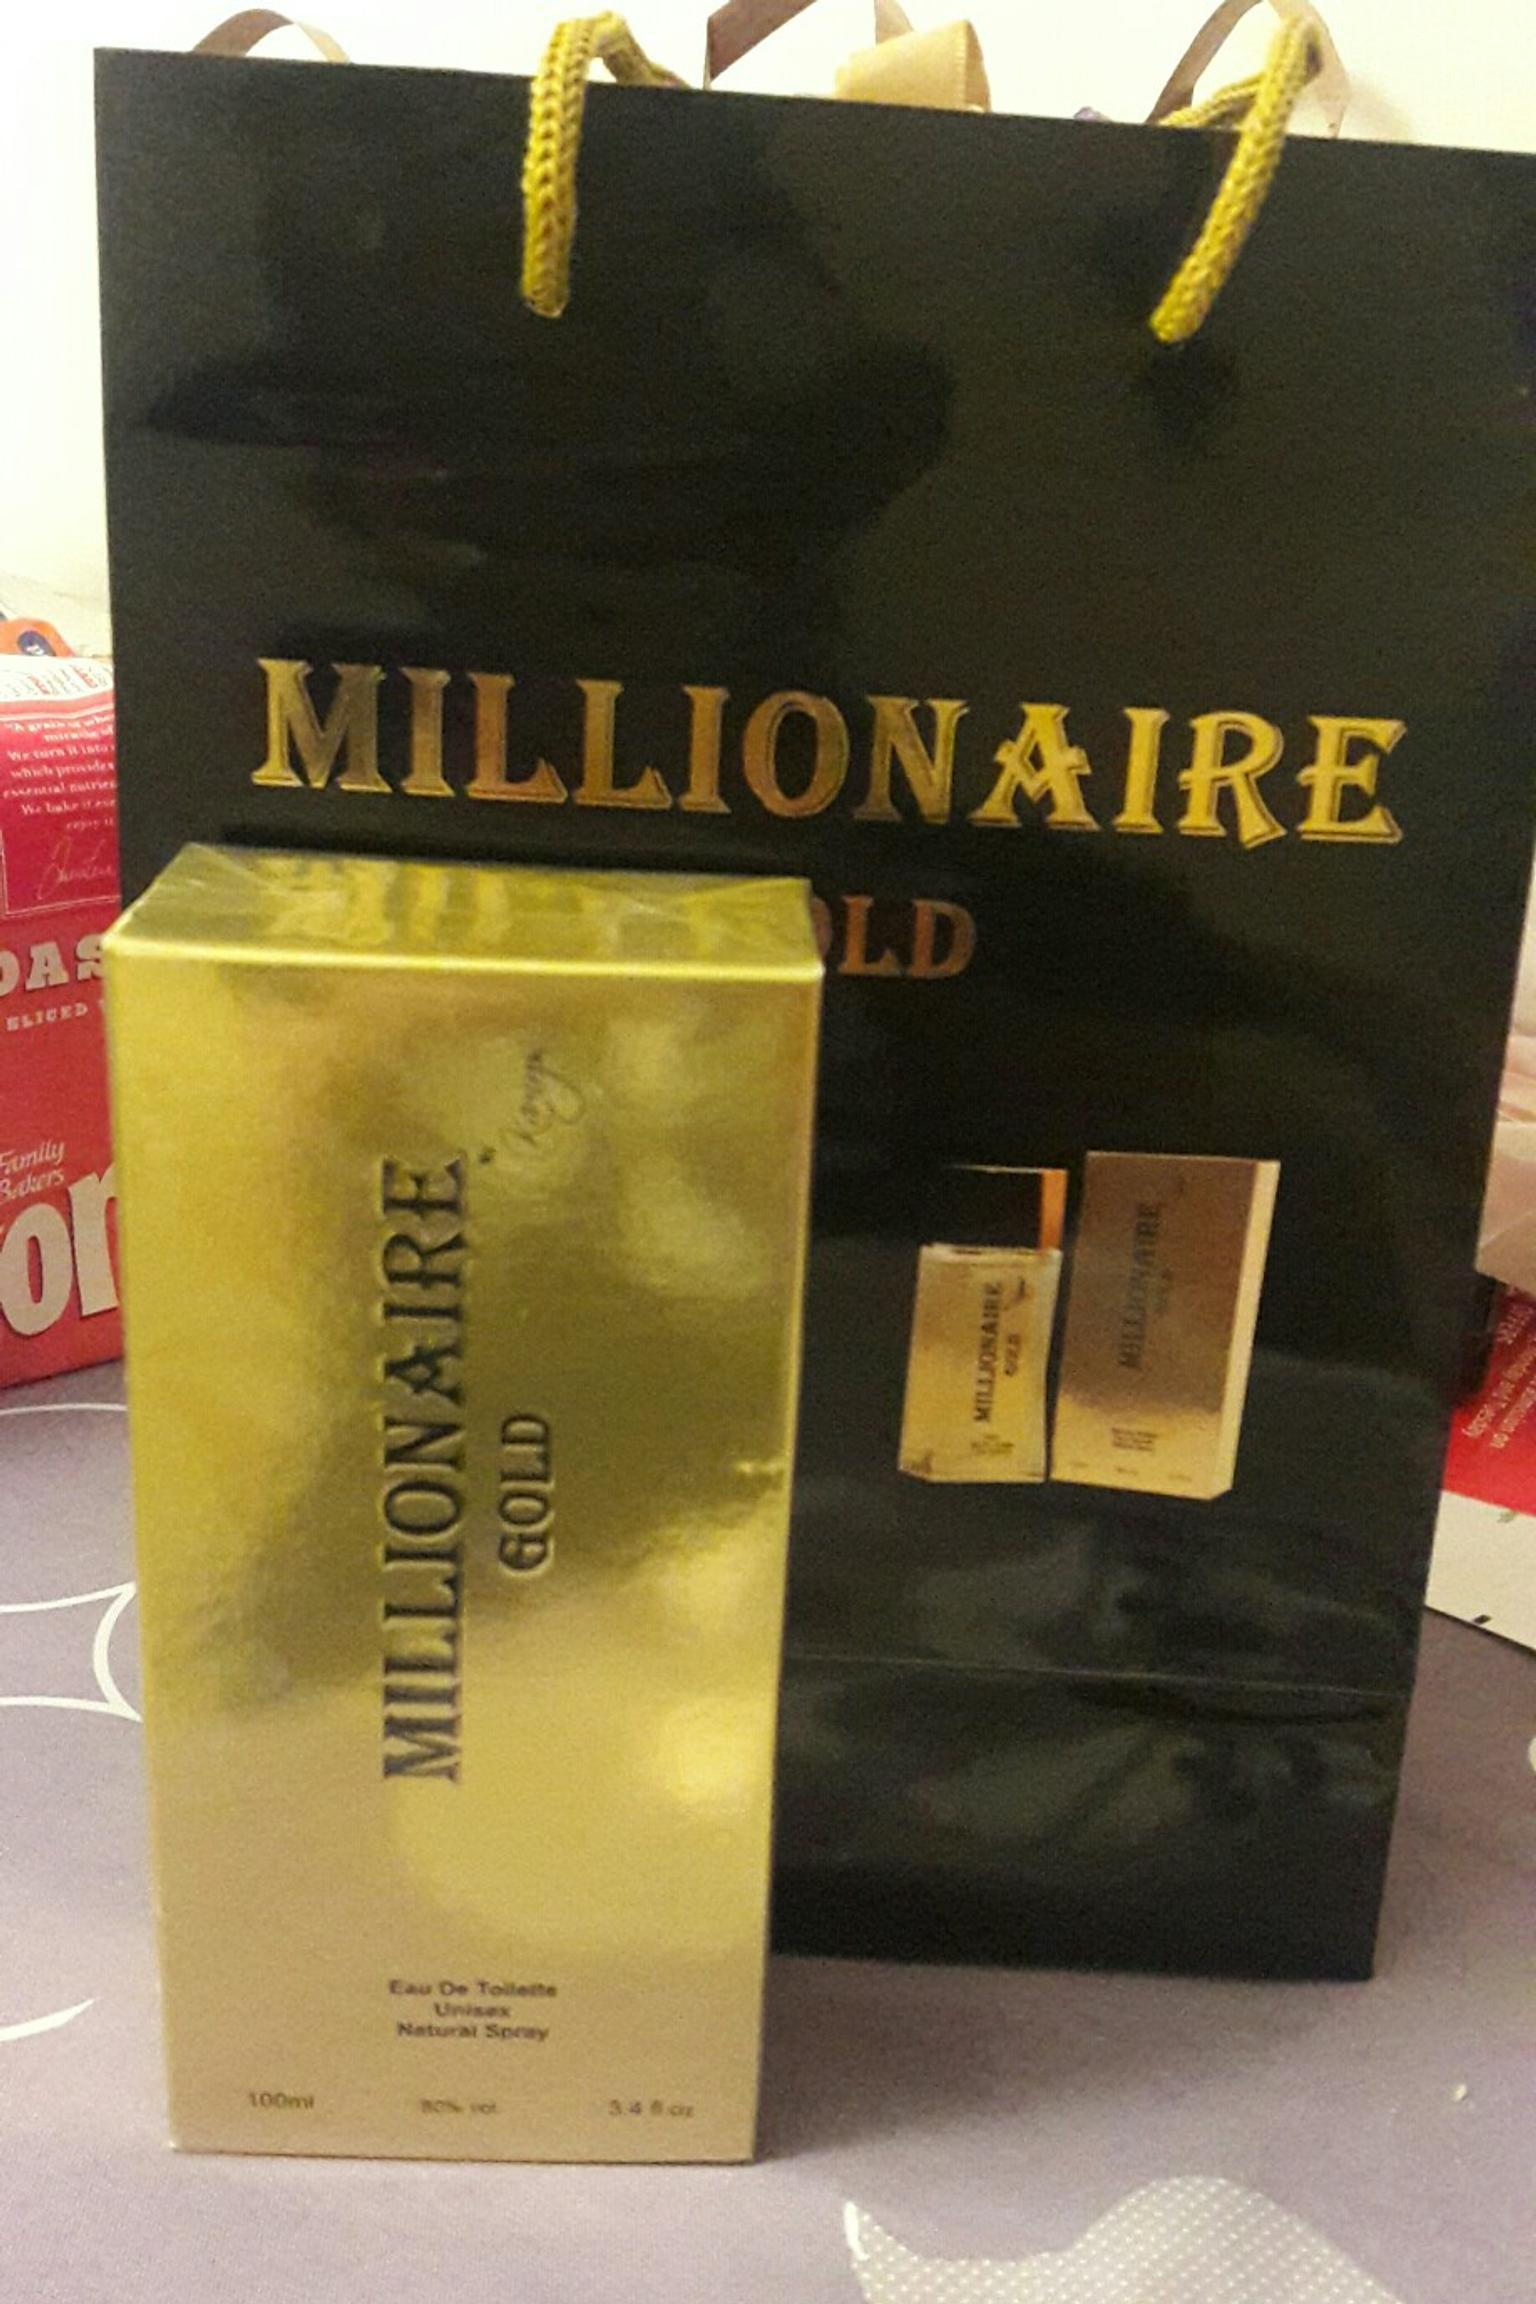 100ml Millionaire Gold Perfume In Bs1 Bristol For 1000 For Sale